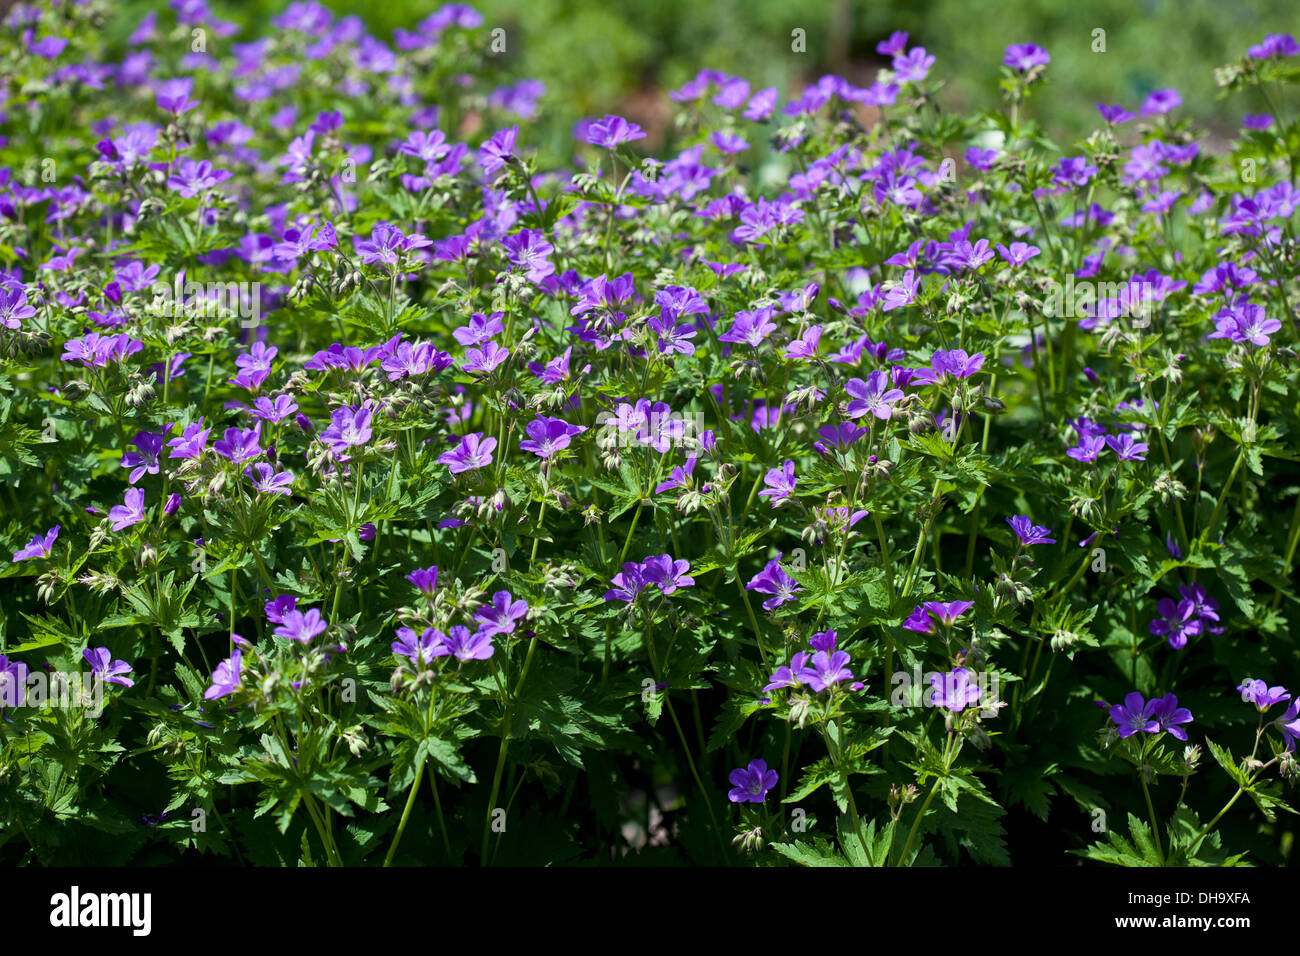 Geranium Sylvaticum 'Mayflower' Stockbild